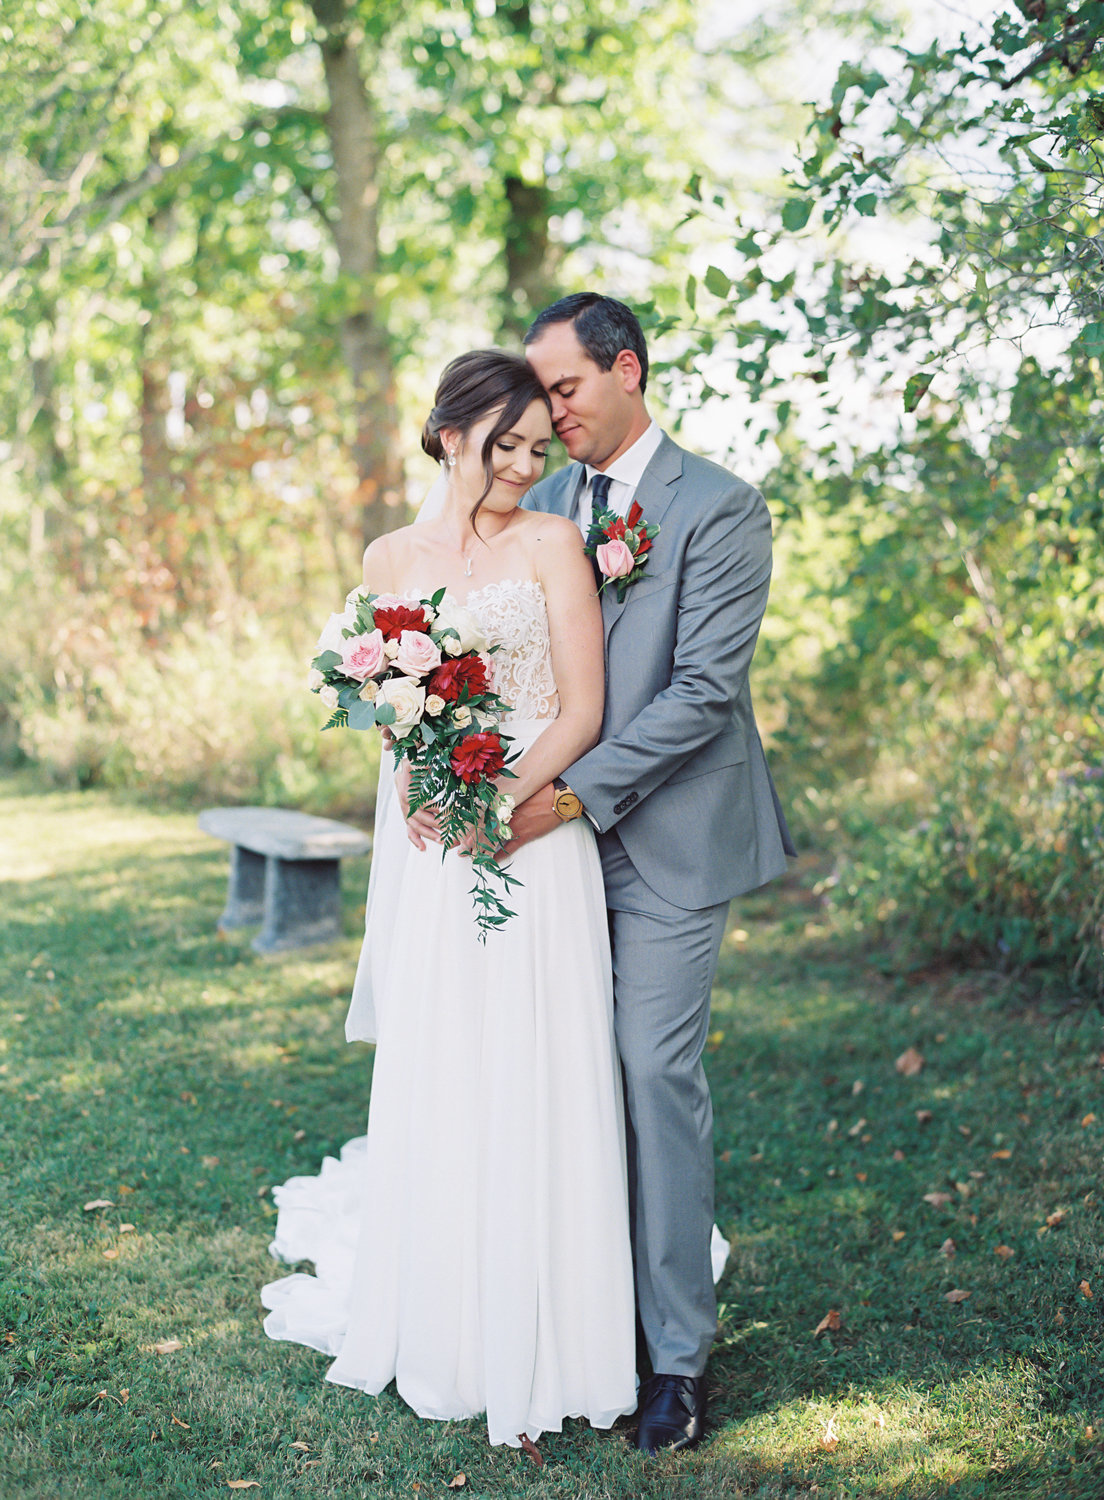 Jacqueline Anne Photography - Ottawa vineyard wedding-23